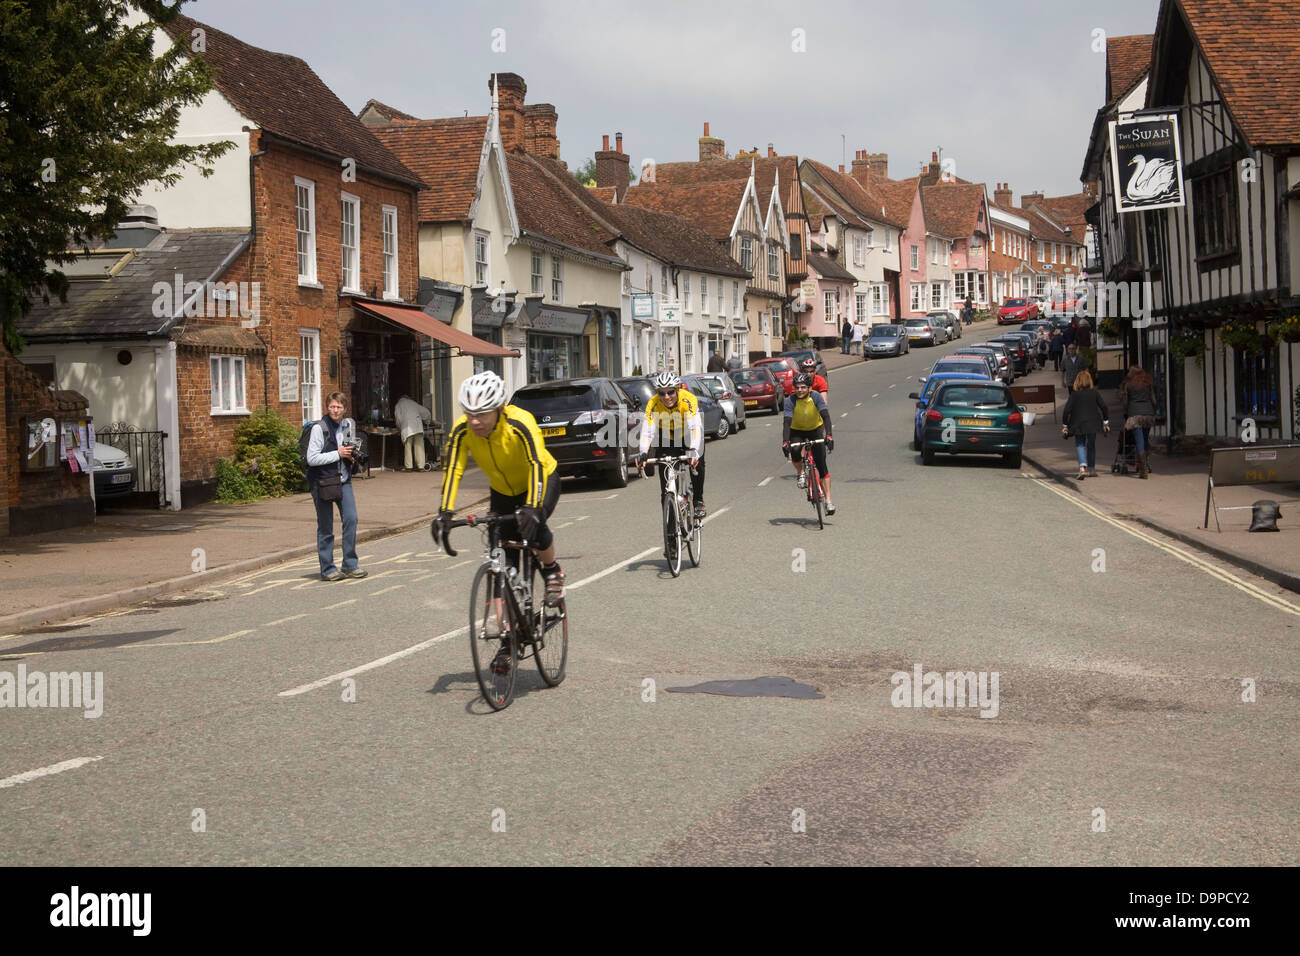 Lavenham Suffolk East Anglia England Group of cyclists cycling along High Street of medieval village - Stock Image